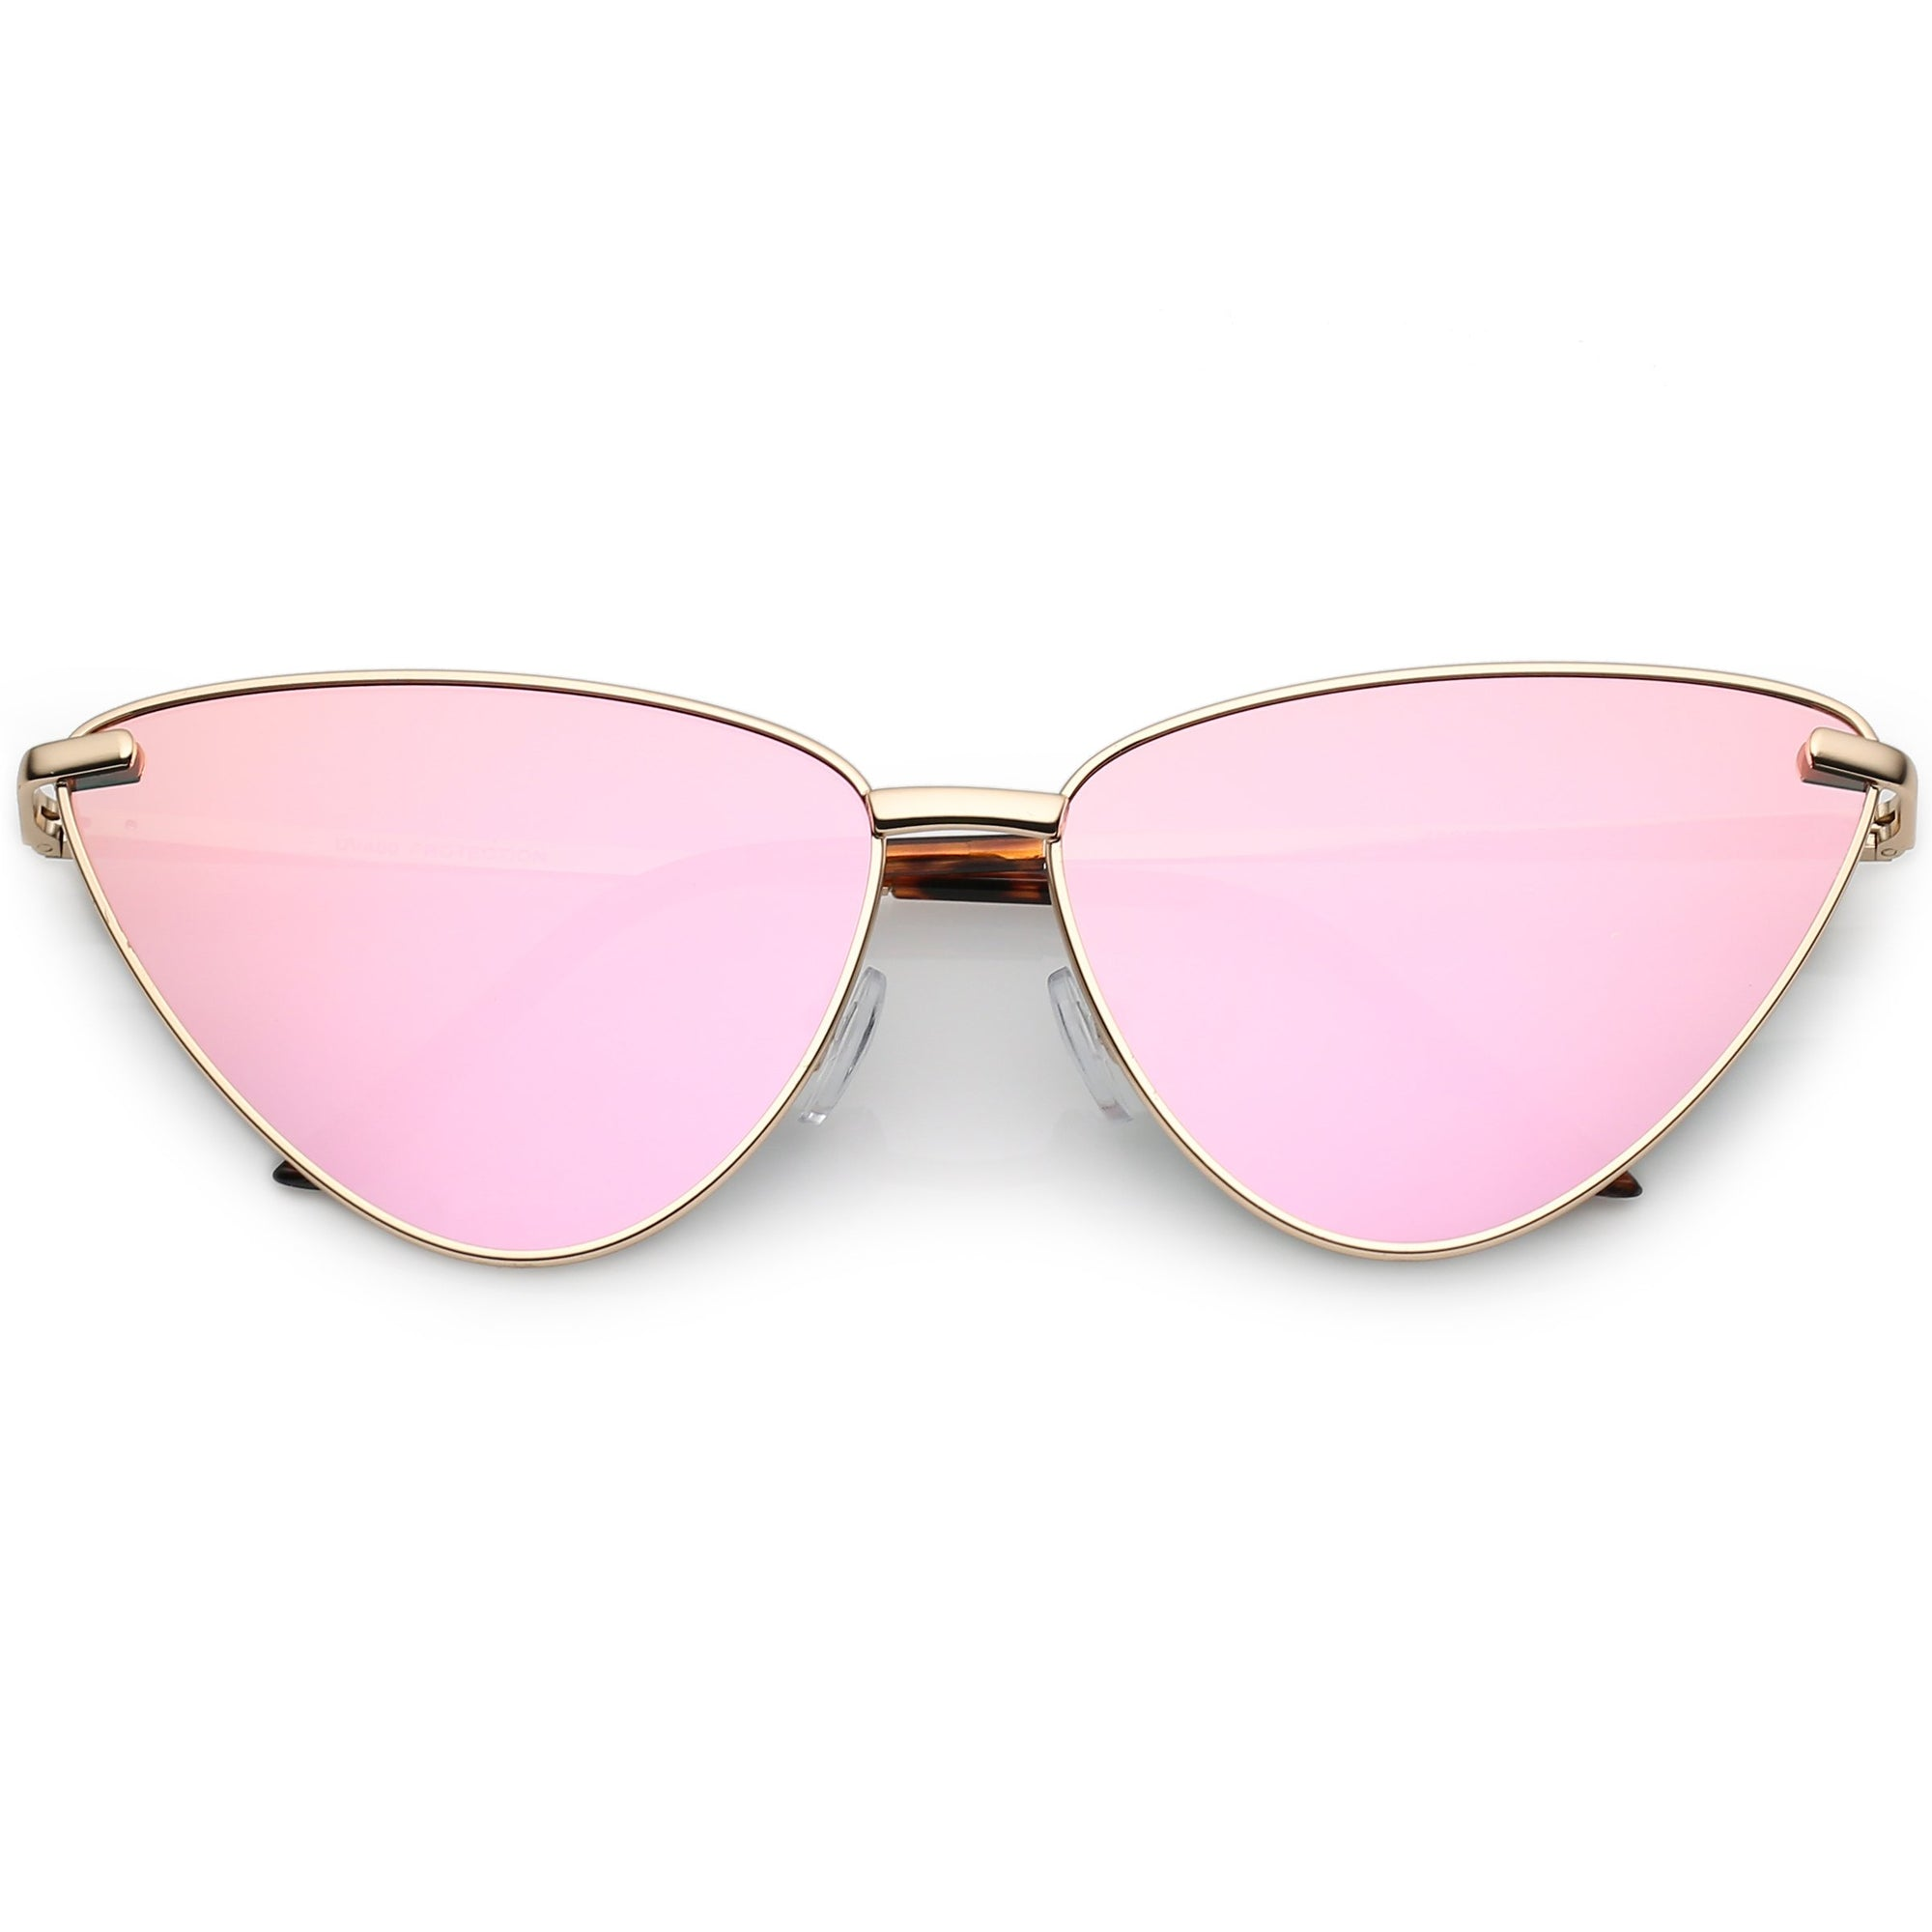 e0a5930d6d3 ... Oversize Thin Cat Eye Mirrored Flat Lens Butterfly Frame Sunglasses  C202 · Gold Pink Mirror